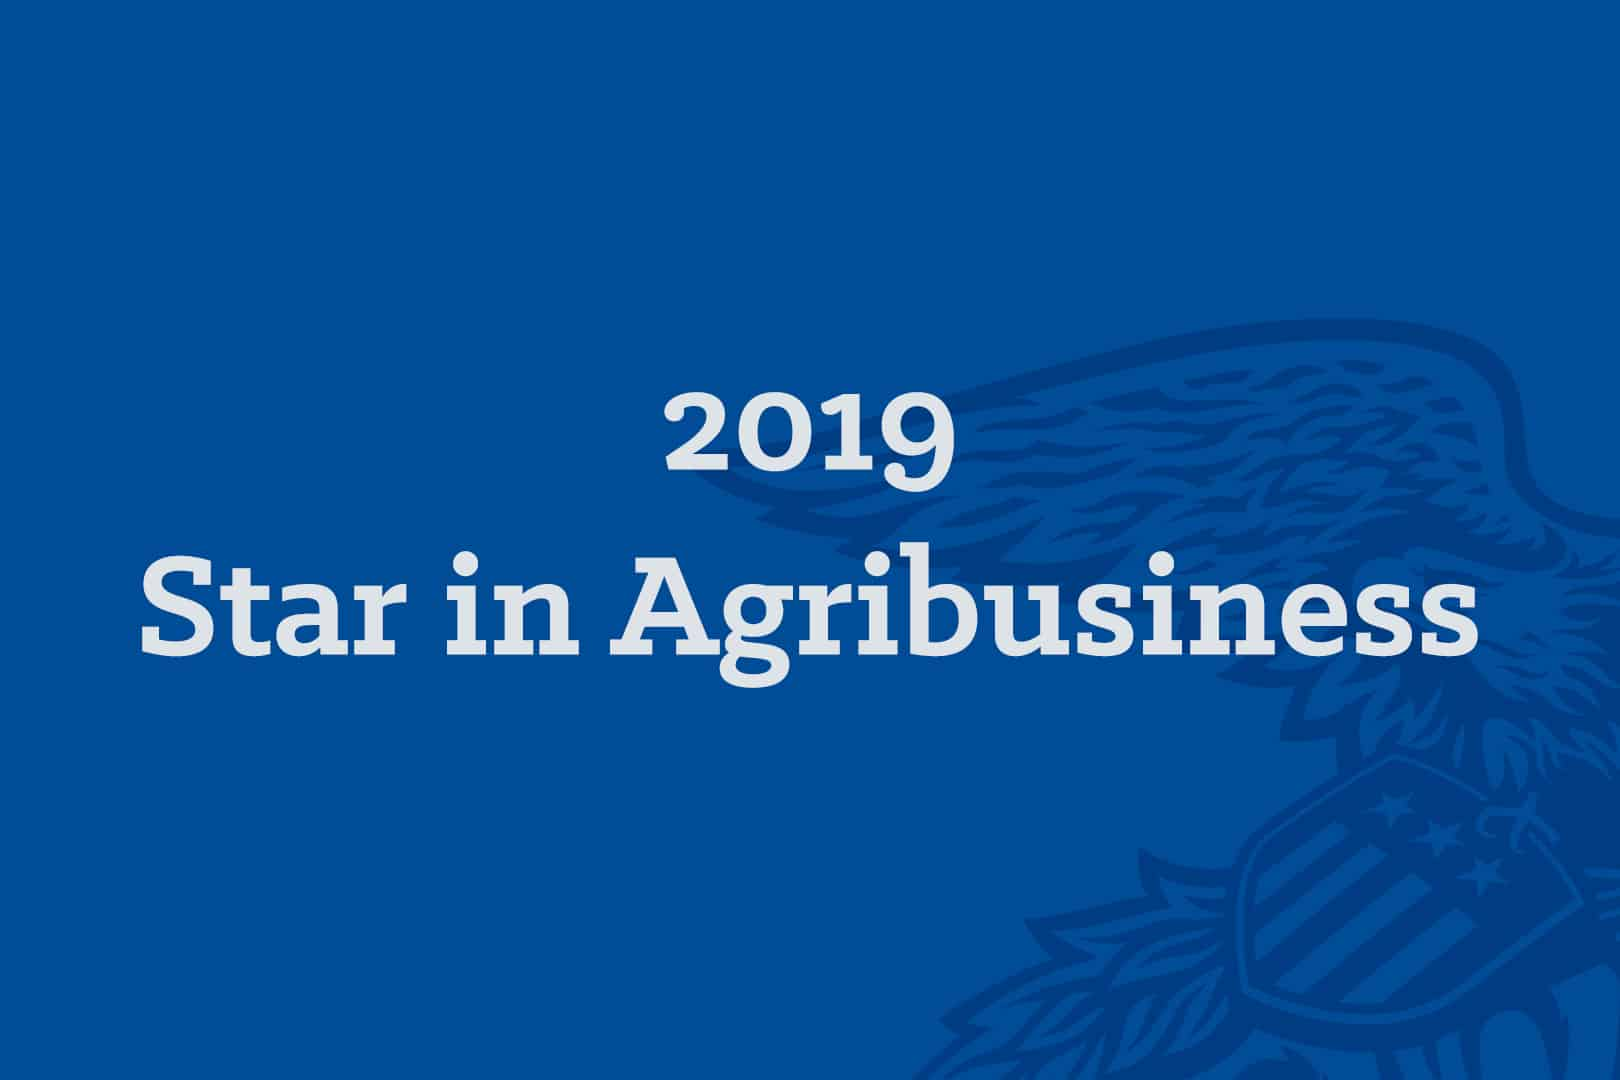 2019 Star in Agribusiness 600x400